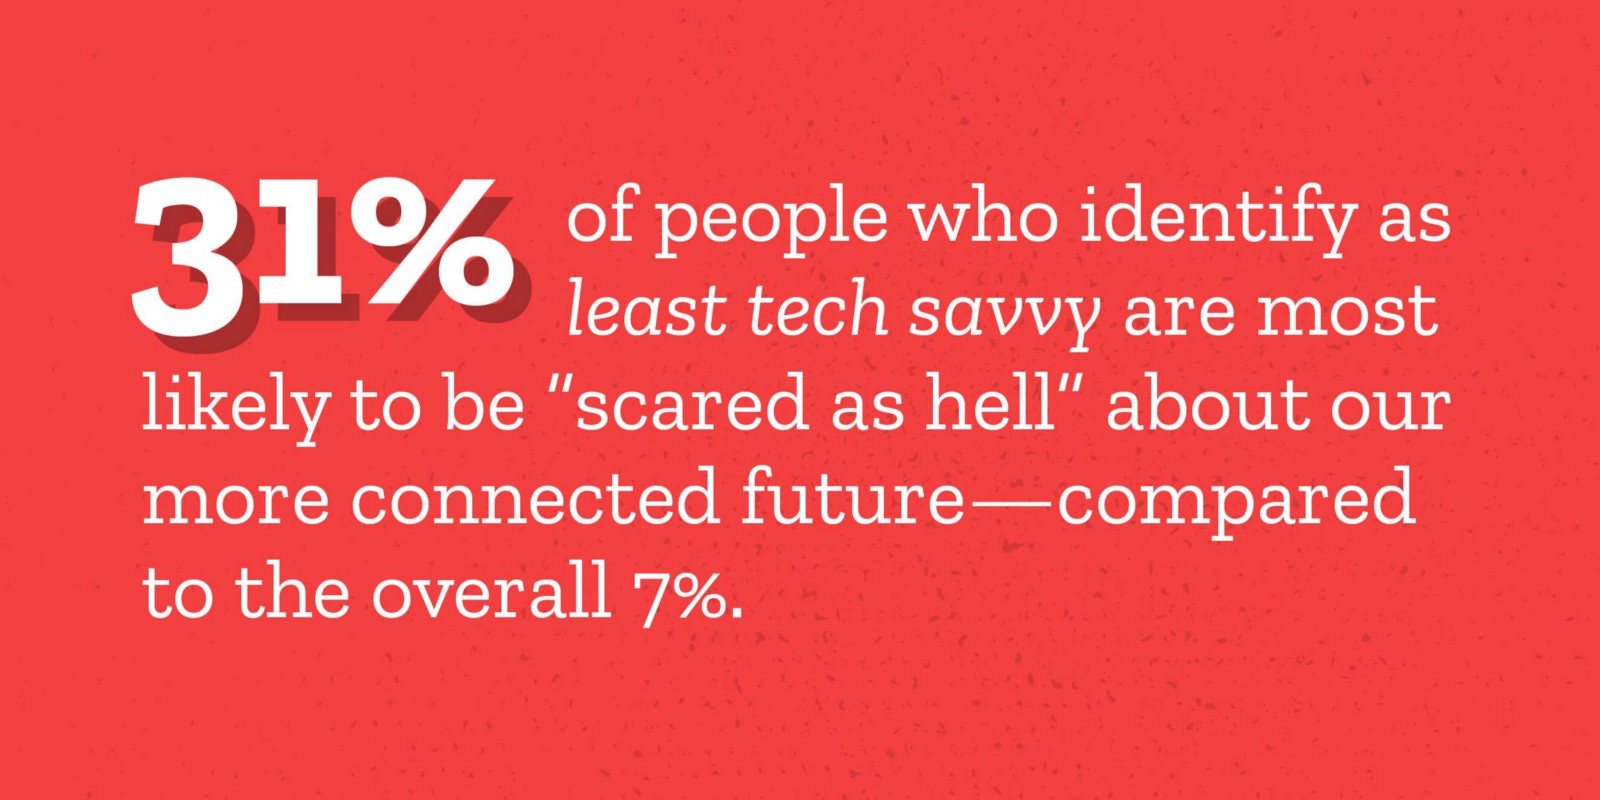 4 the world is pretty evenly divided between fear and optimism for a more connected future